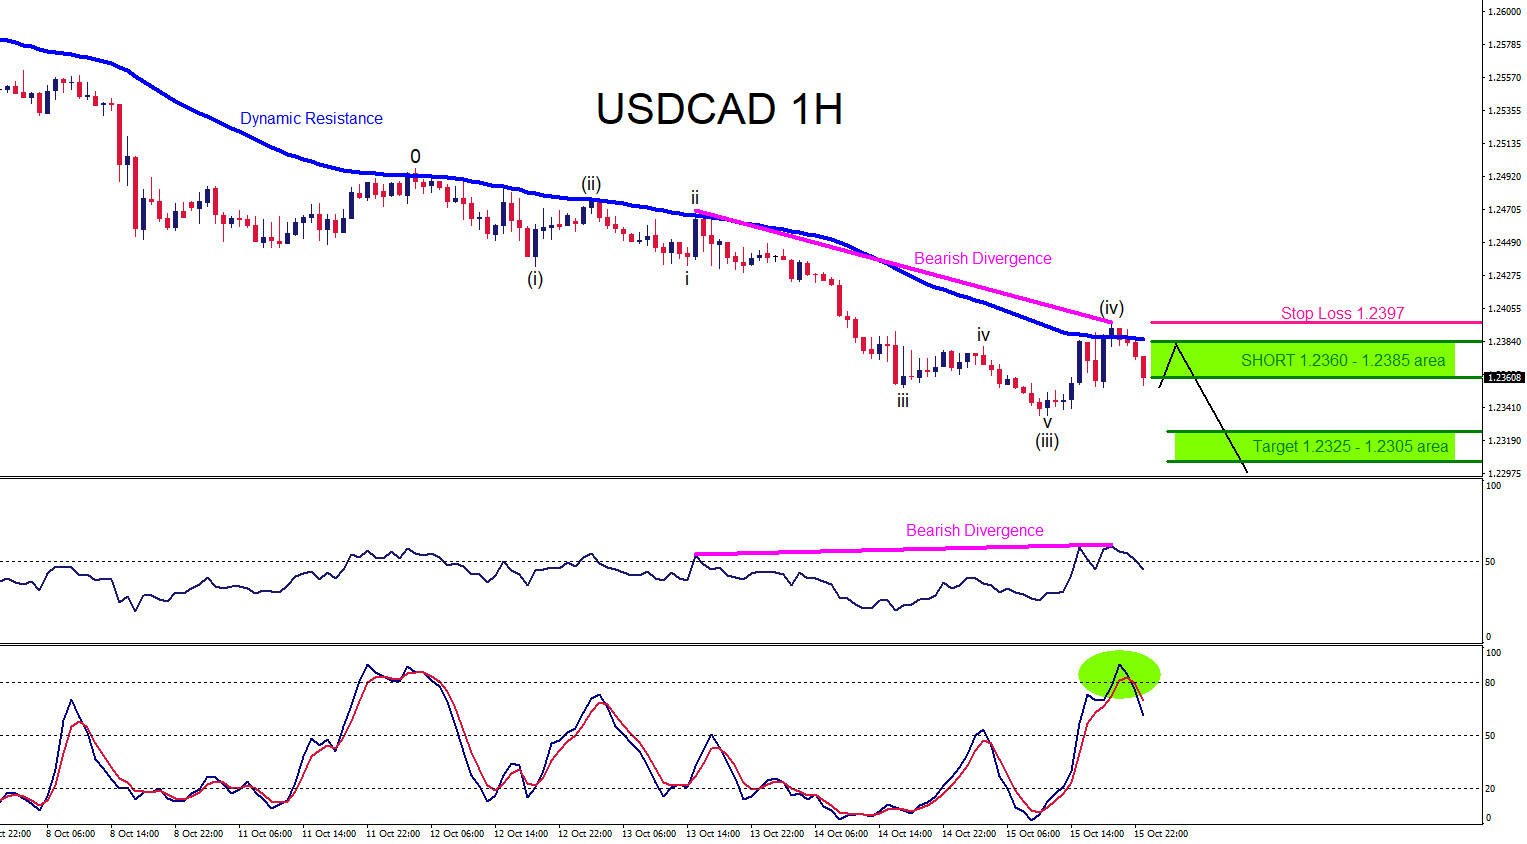 USDCAD : Watch for a Continuation Move Lower